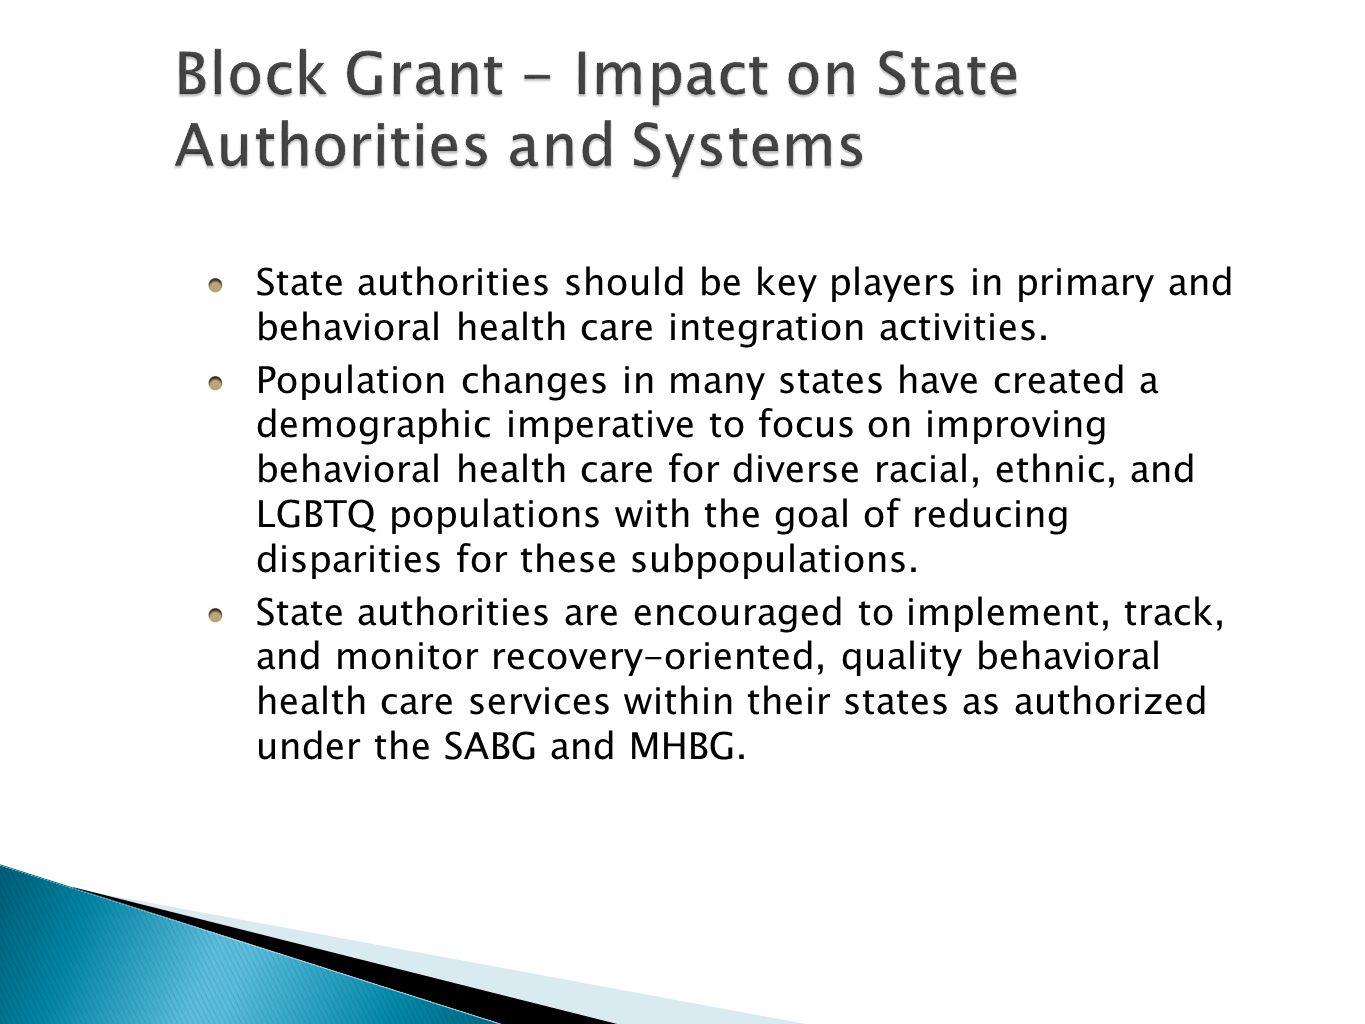 State authorities should be key players in primary and behavioral health care integration activities.